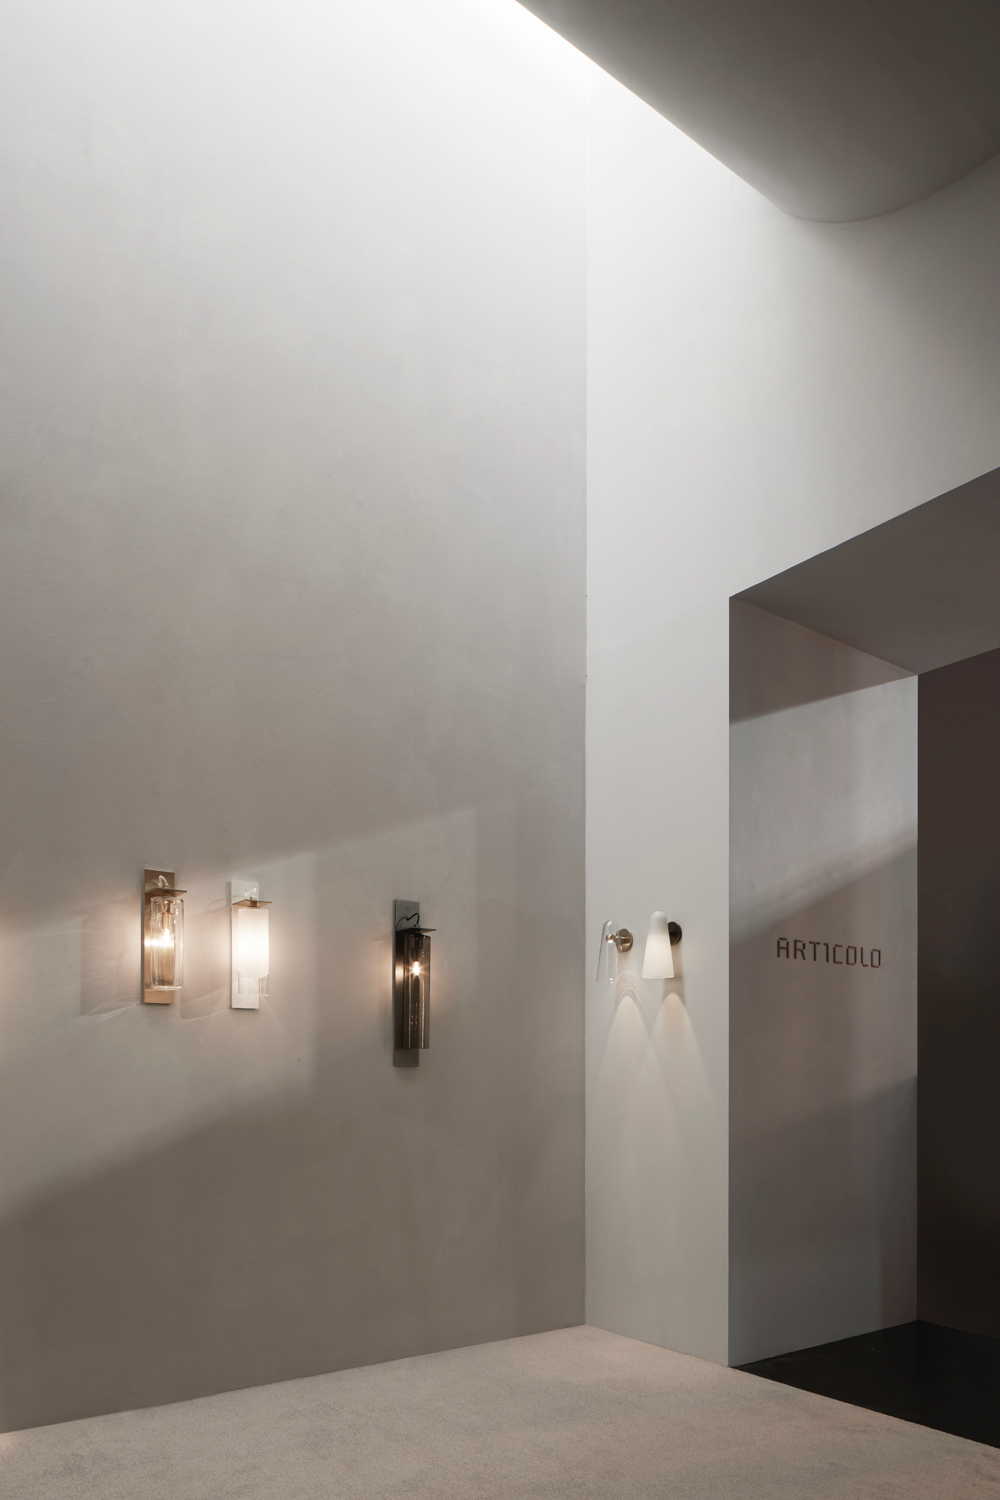 Articolo stand at Euroluce 2019 showing three variations of the Eclipse wall sconce on the left and two of the Domi wall sconce (in clear and frosted) on the right. Photograph: Willem-Dirk du Toit.